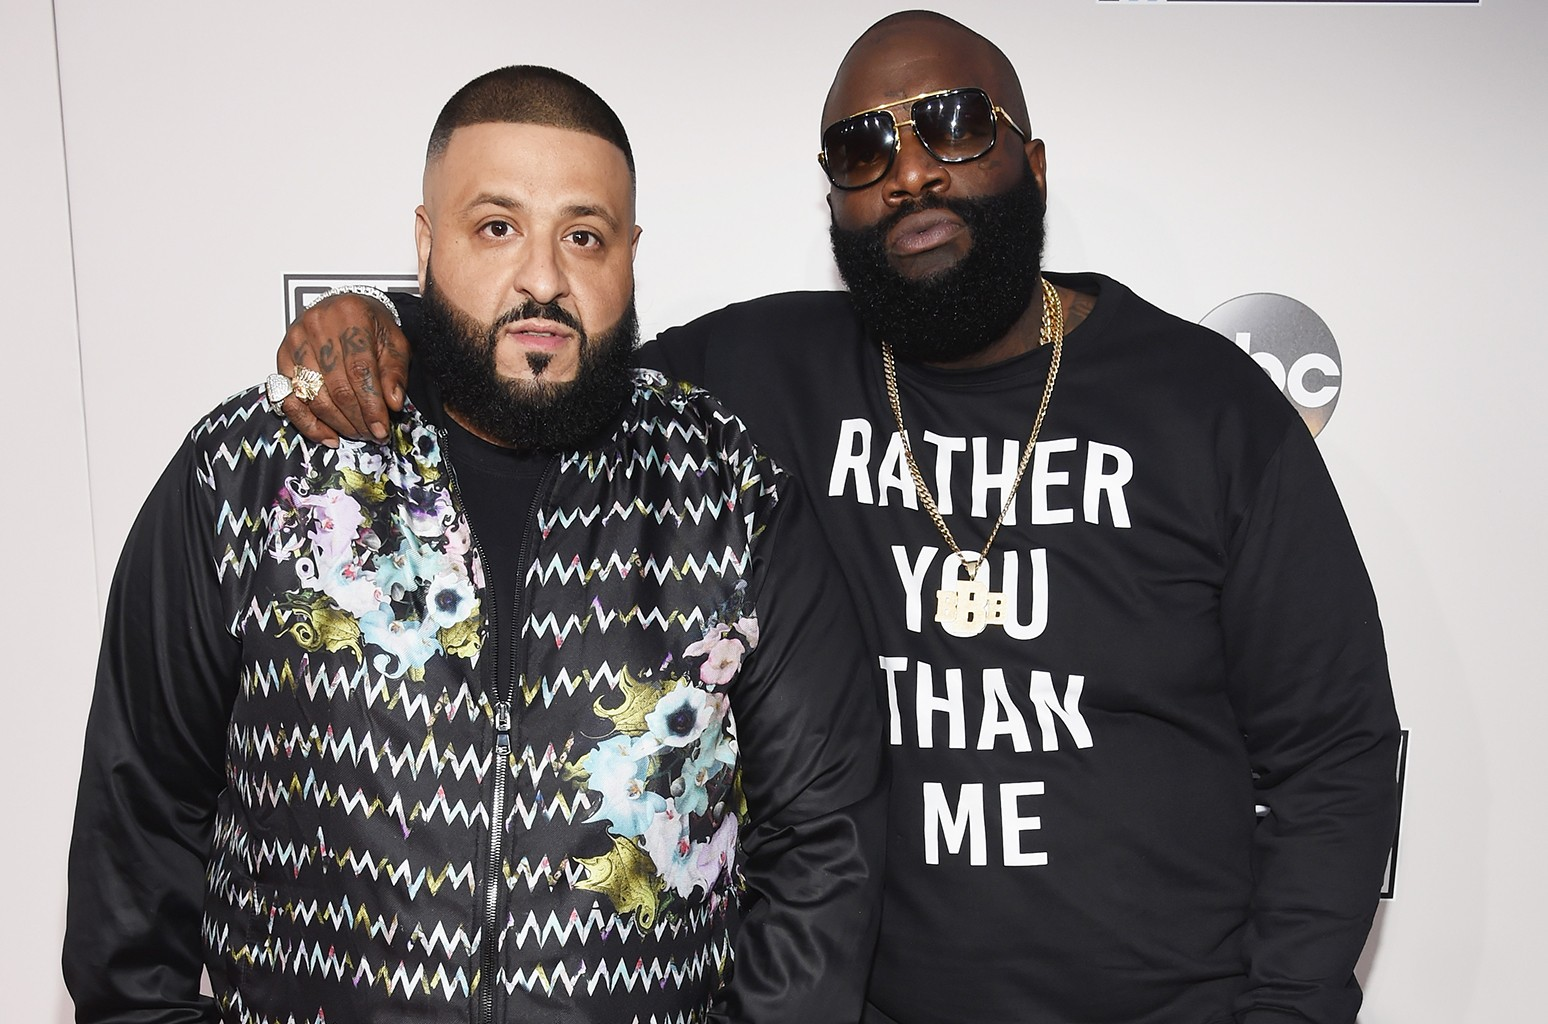 DJ Khaled and Rick Ross attend the 2016 American Music Awards